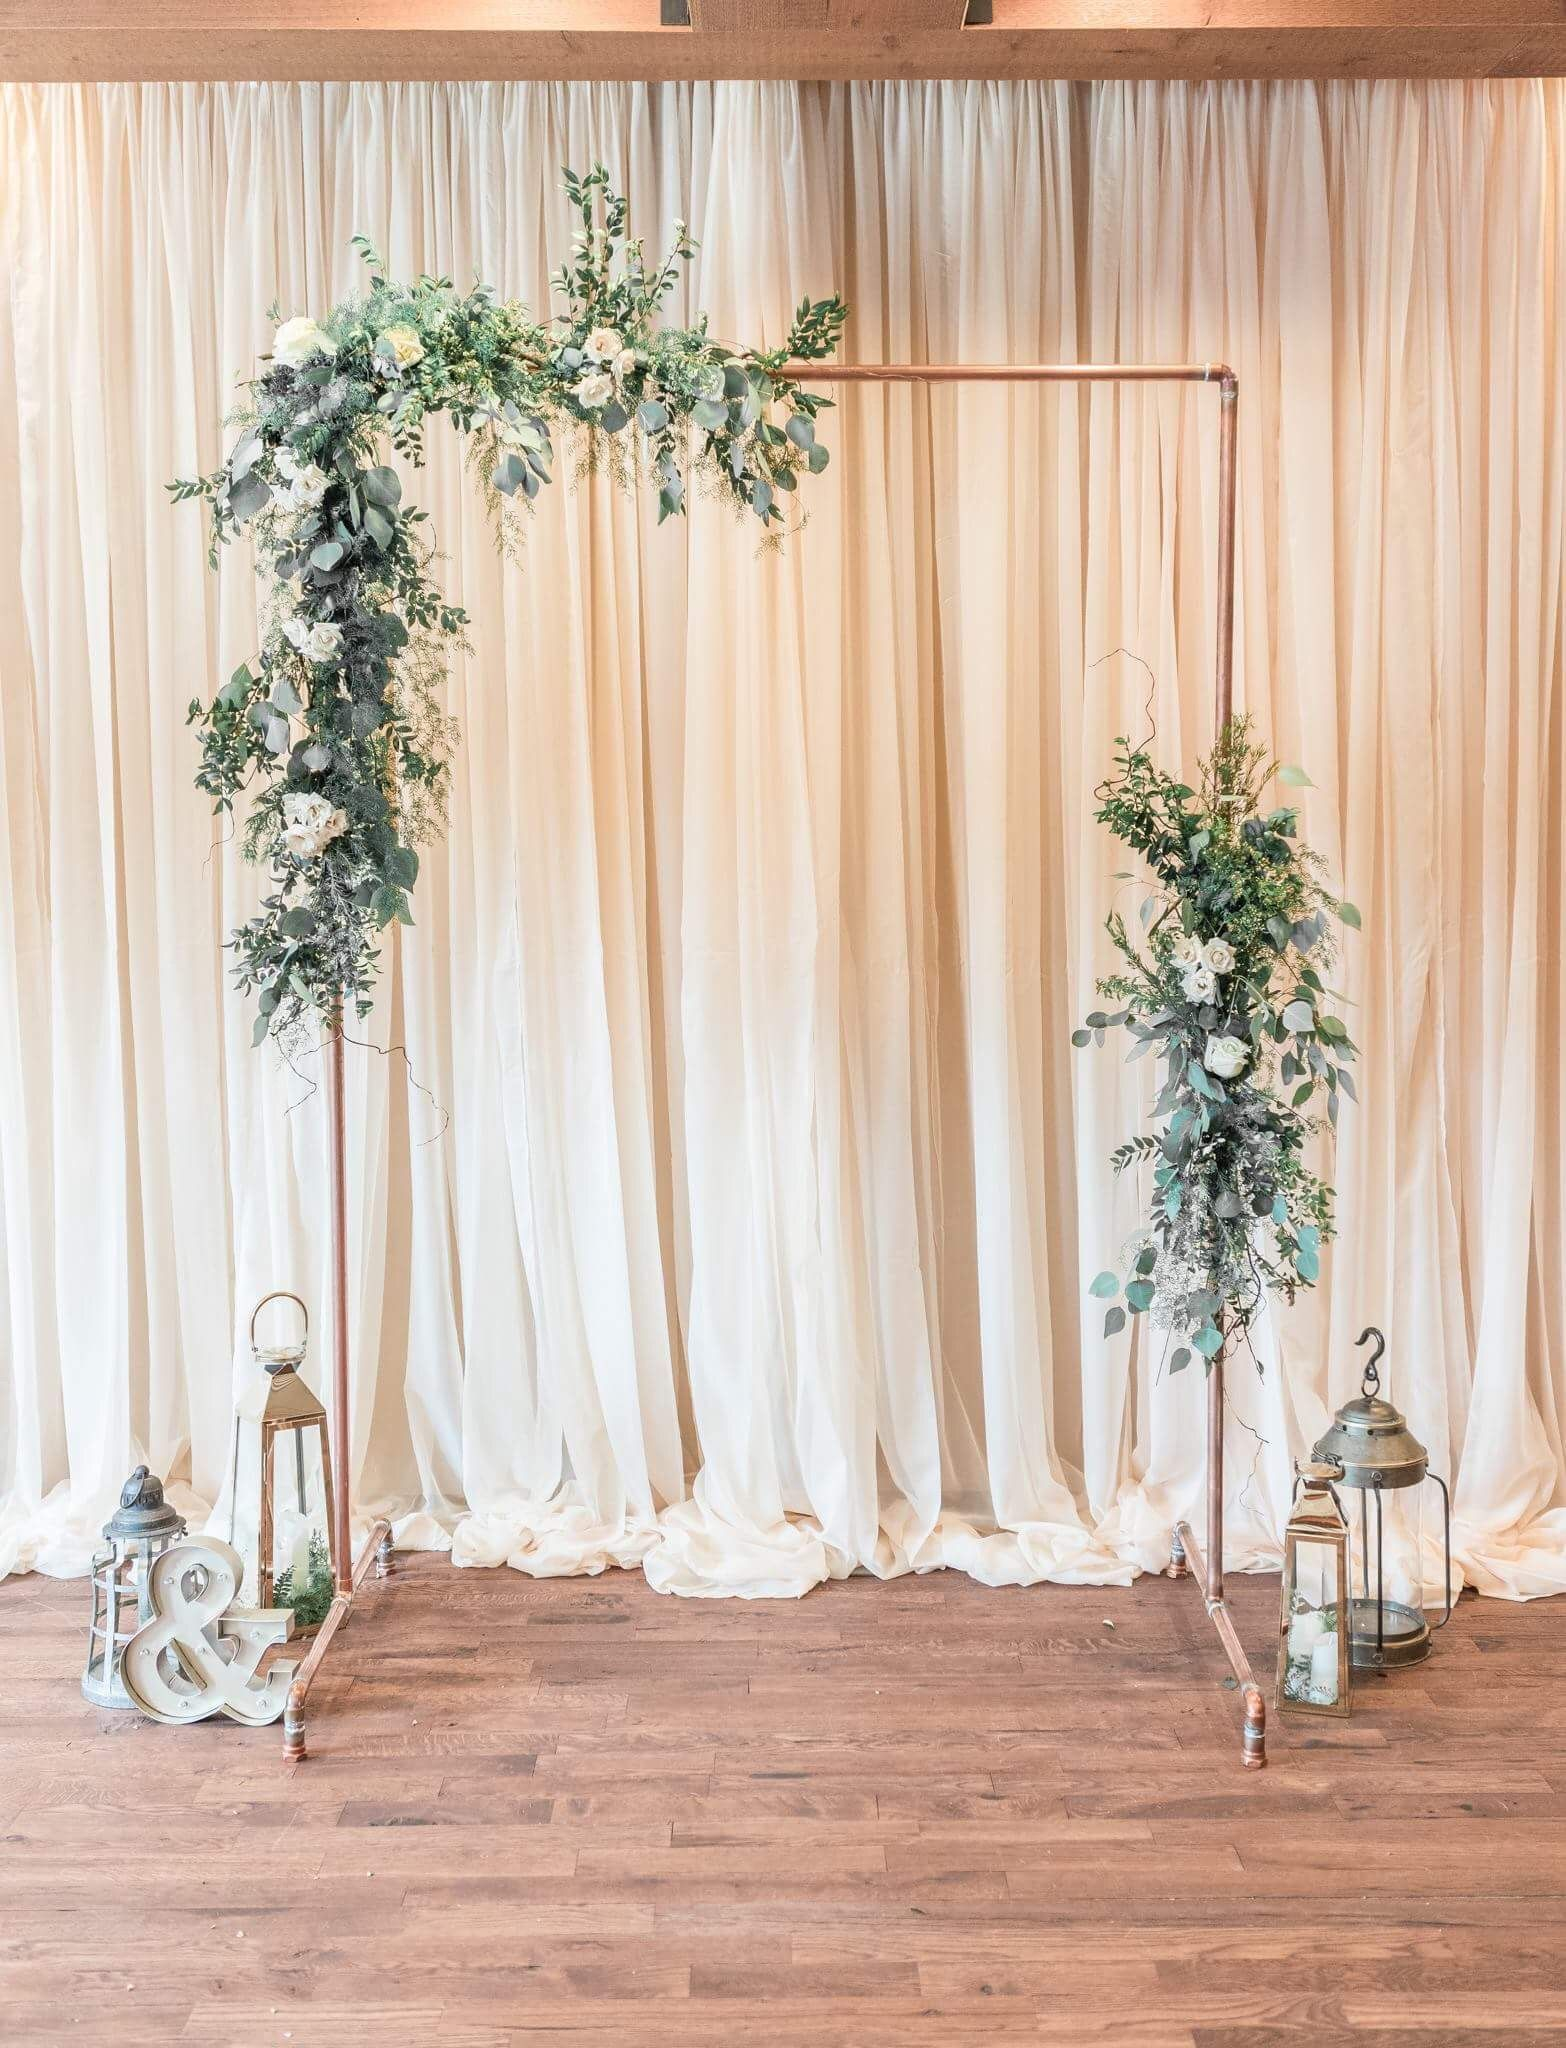 41+ Wedding photo booth backdrop uk ideas in 2021